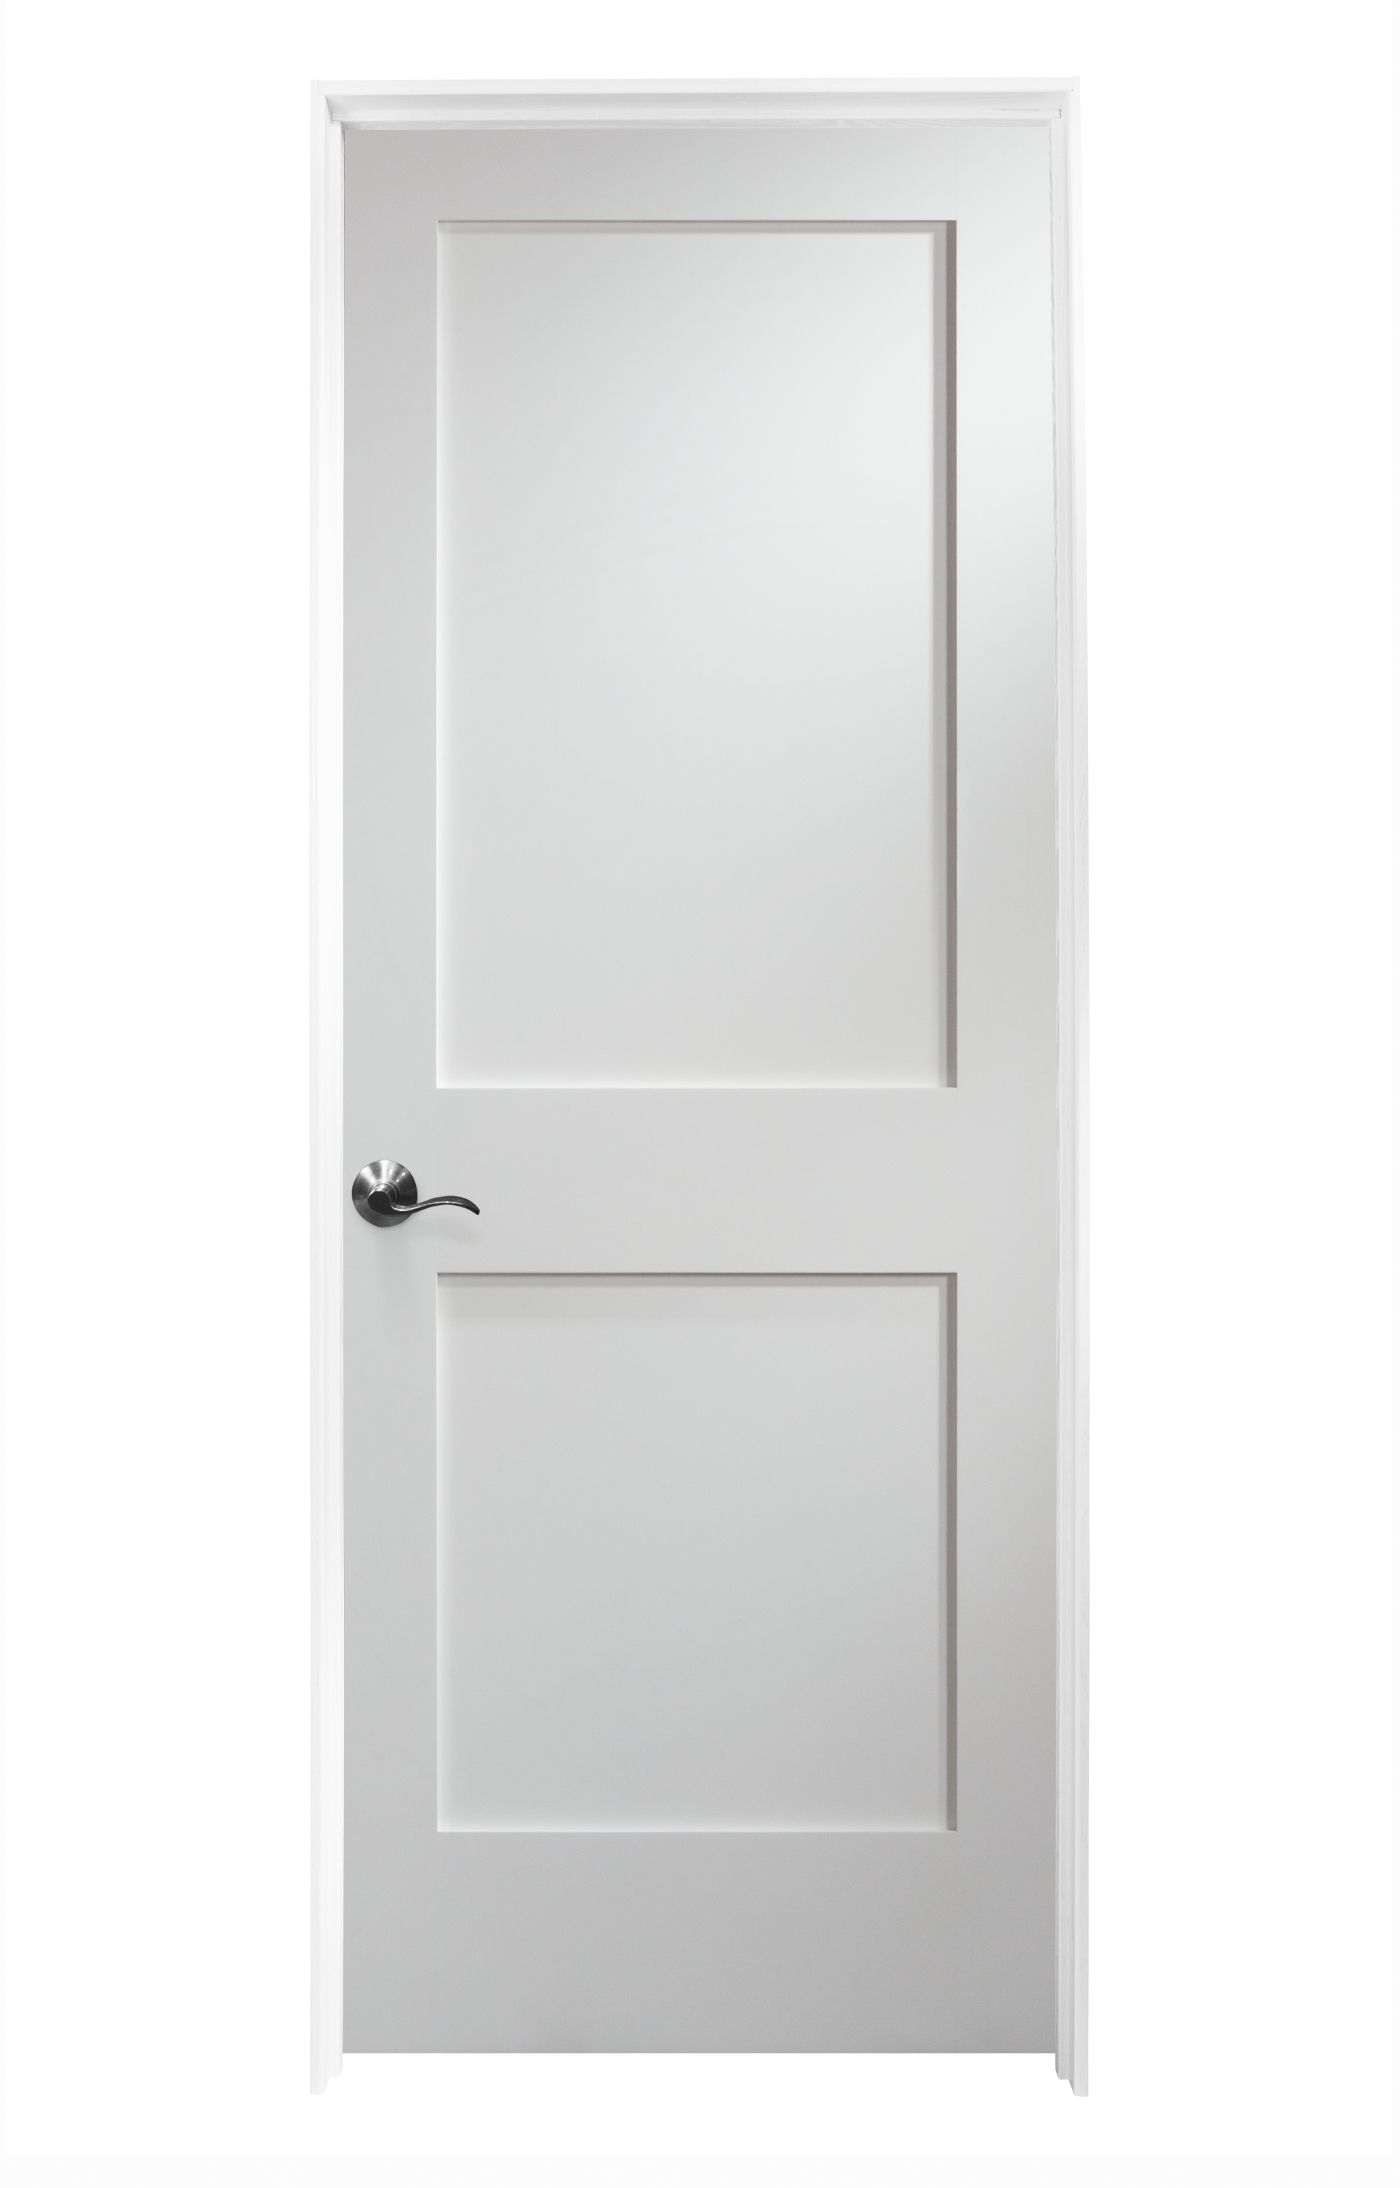 Builddirect Woodport Doors Interior Doors Knock Down Shaker Collection Doors Interior Blue Interior Doors Interior Barn Doors